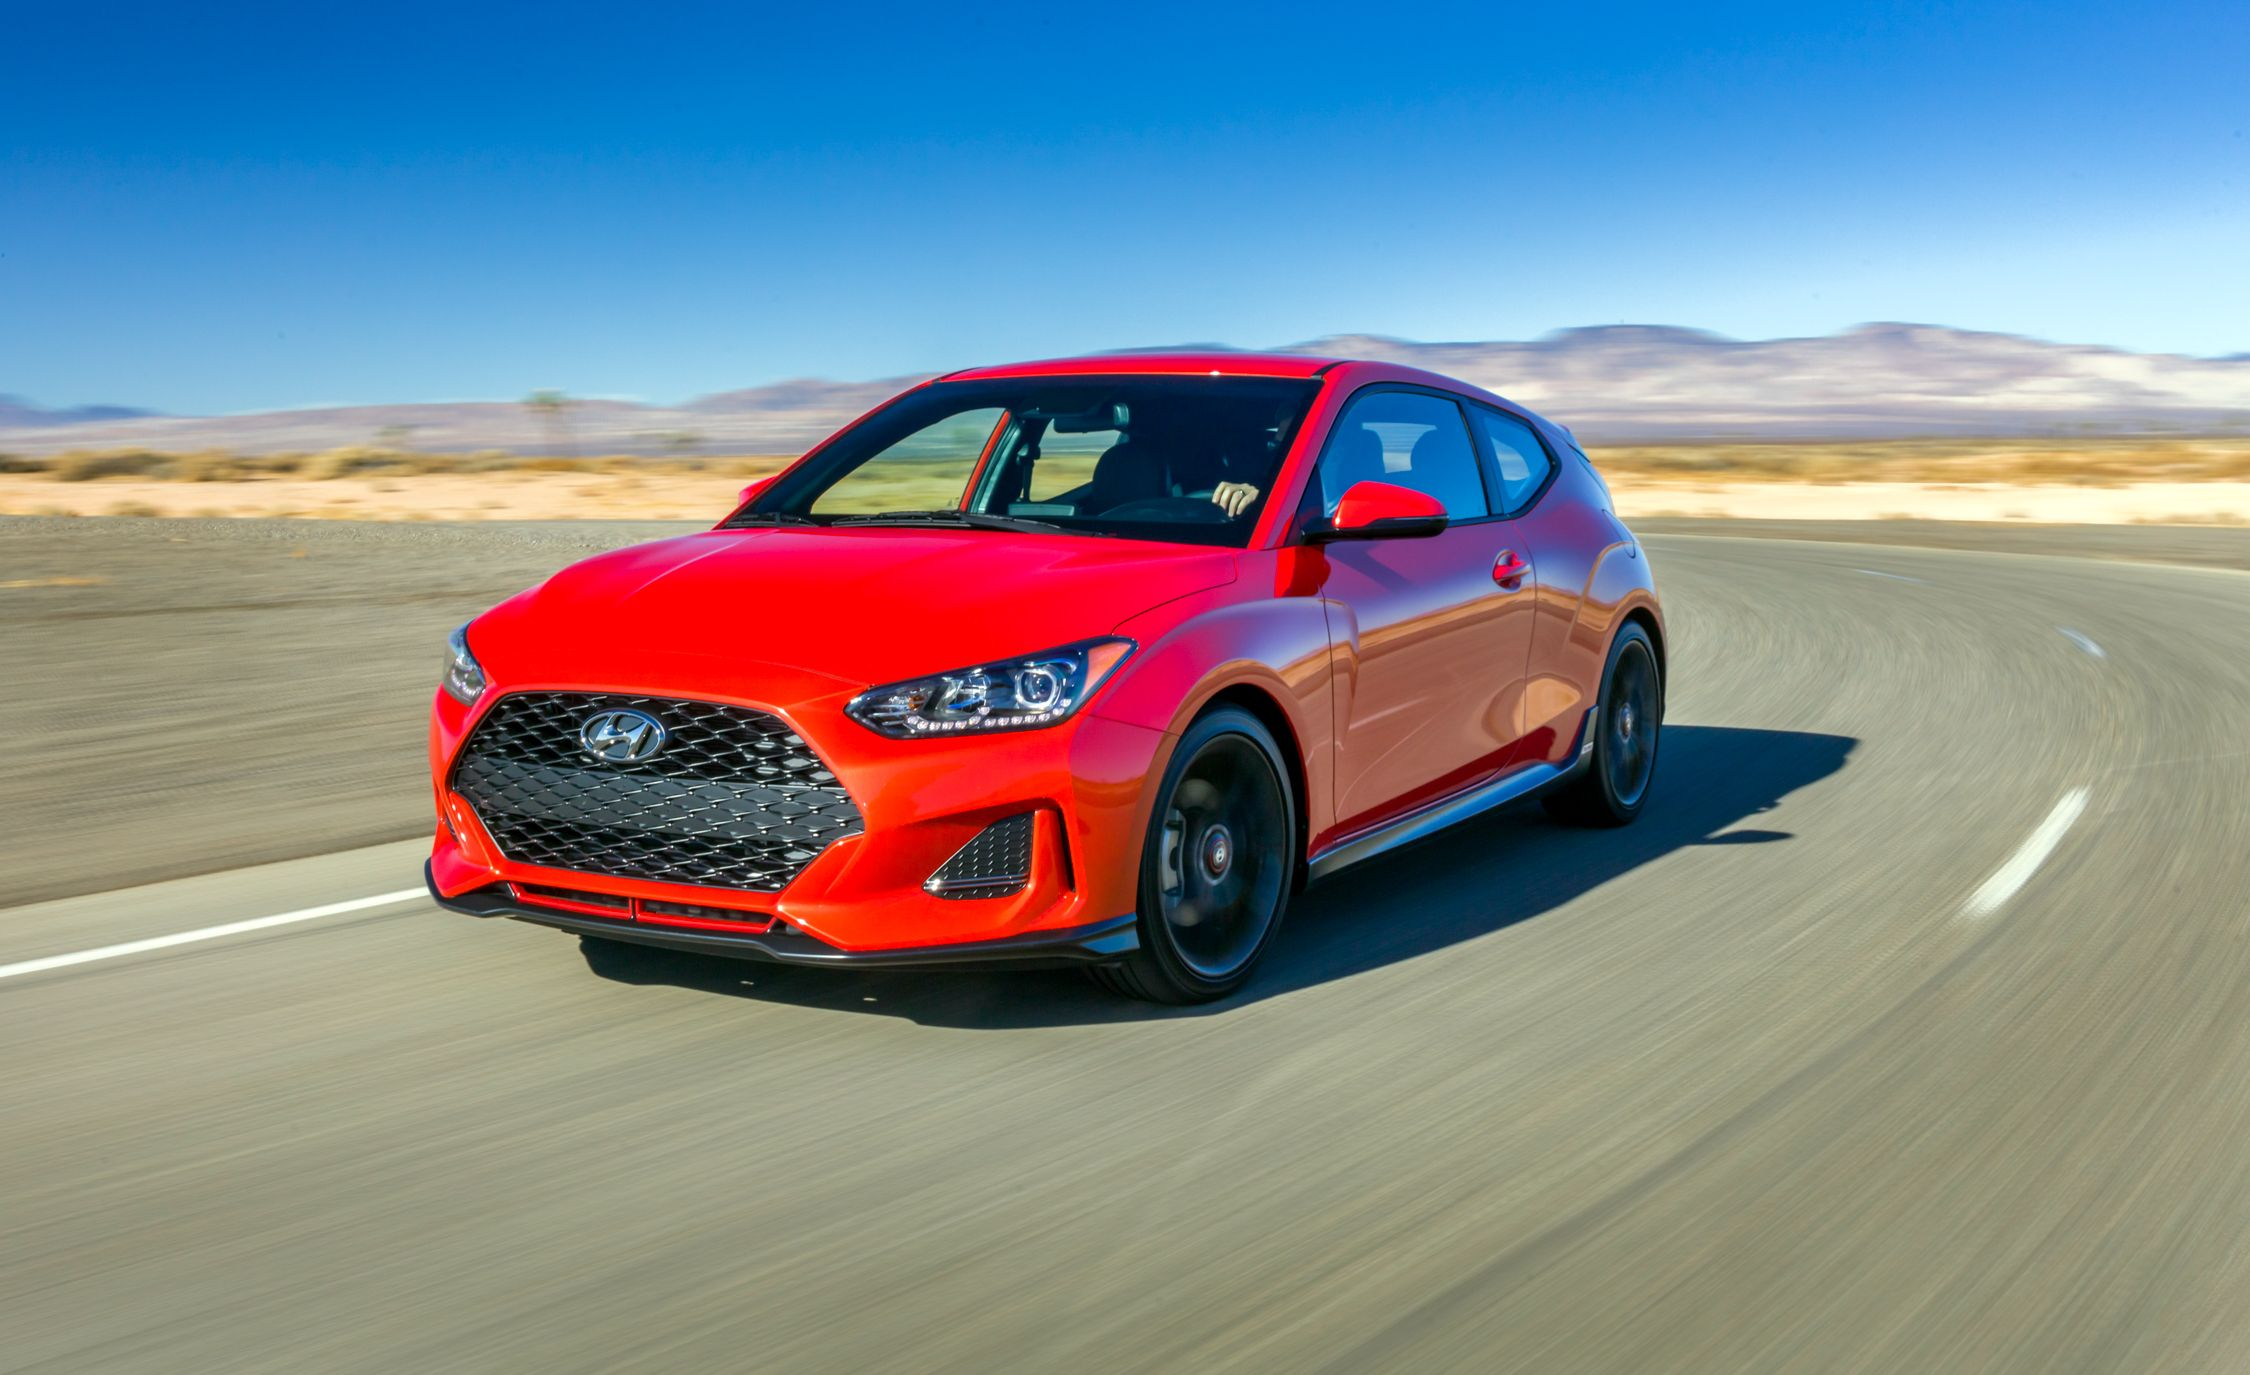 Three Doors Down 2019 Hyundai Veloster Priced from $19385 : veloster door - pezcame.com